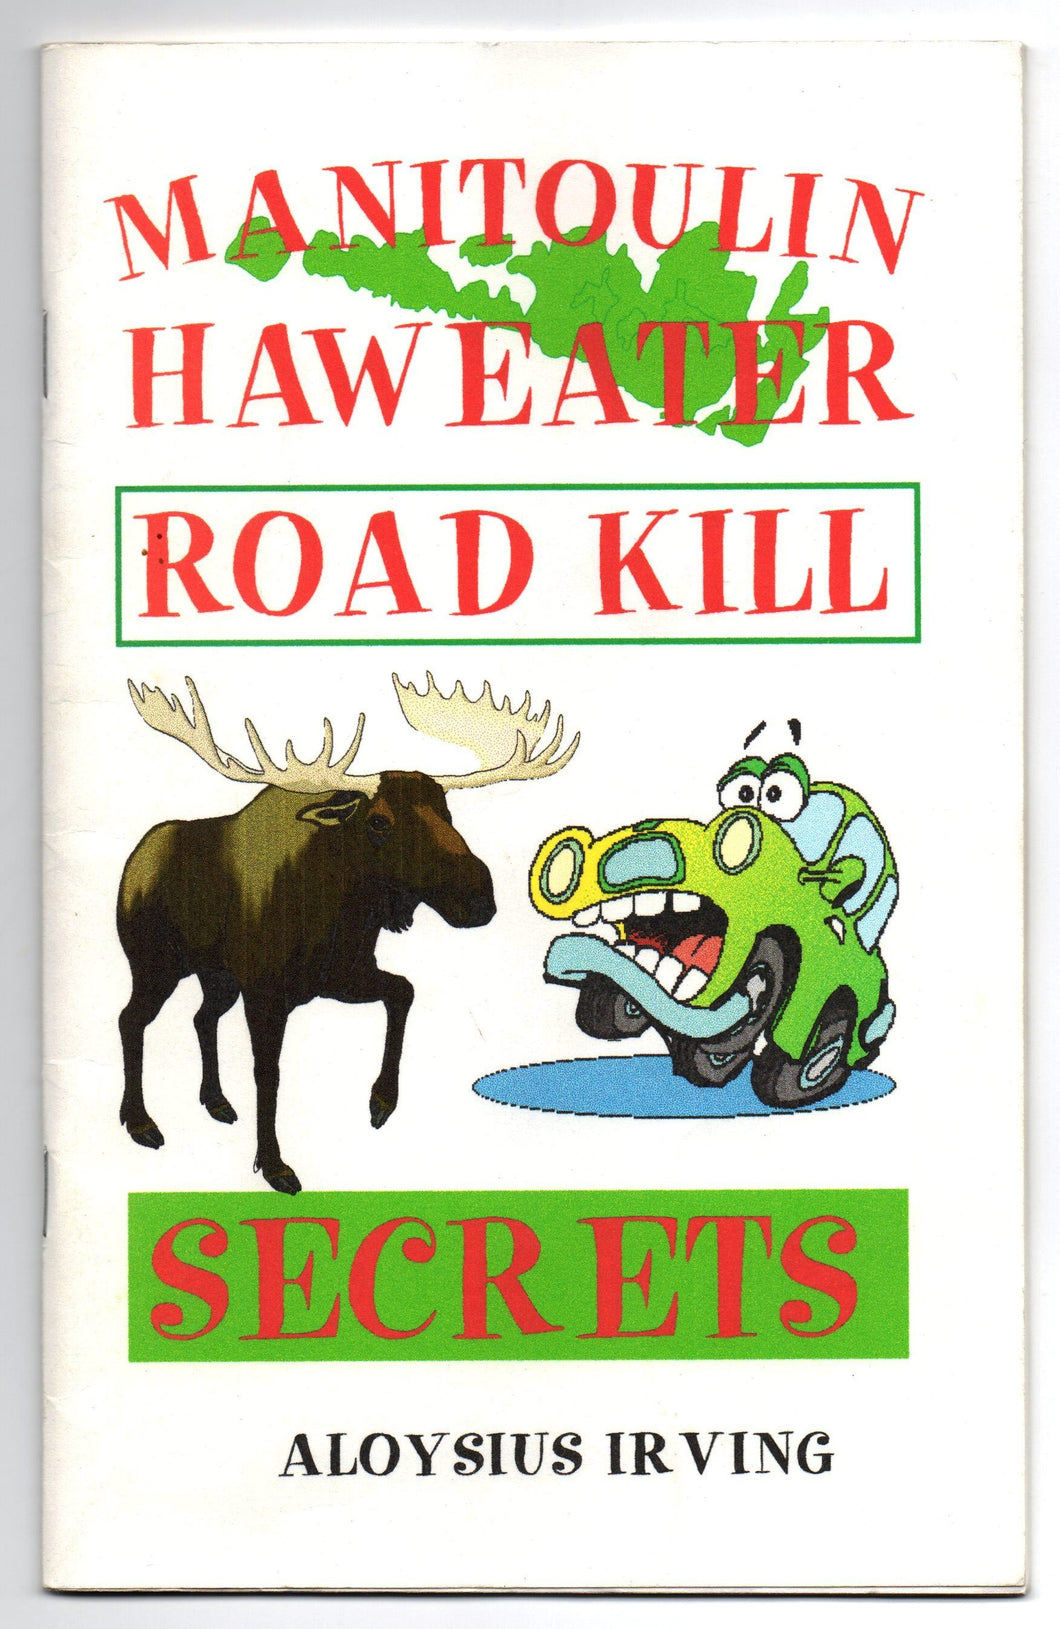 Manitoulin Haweater Road Kill Secrets